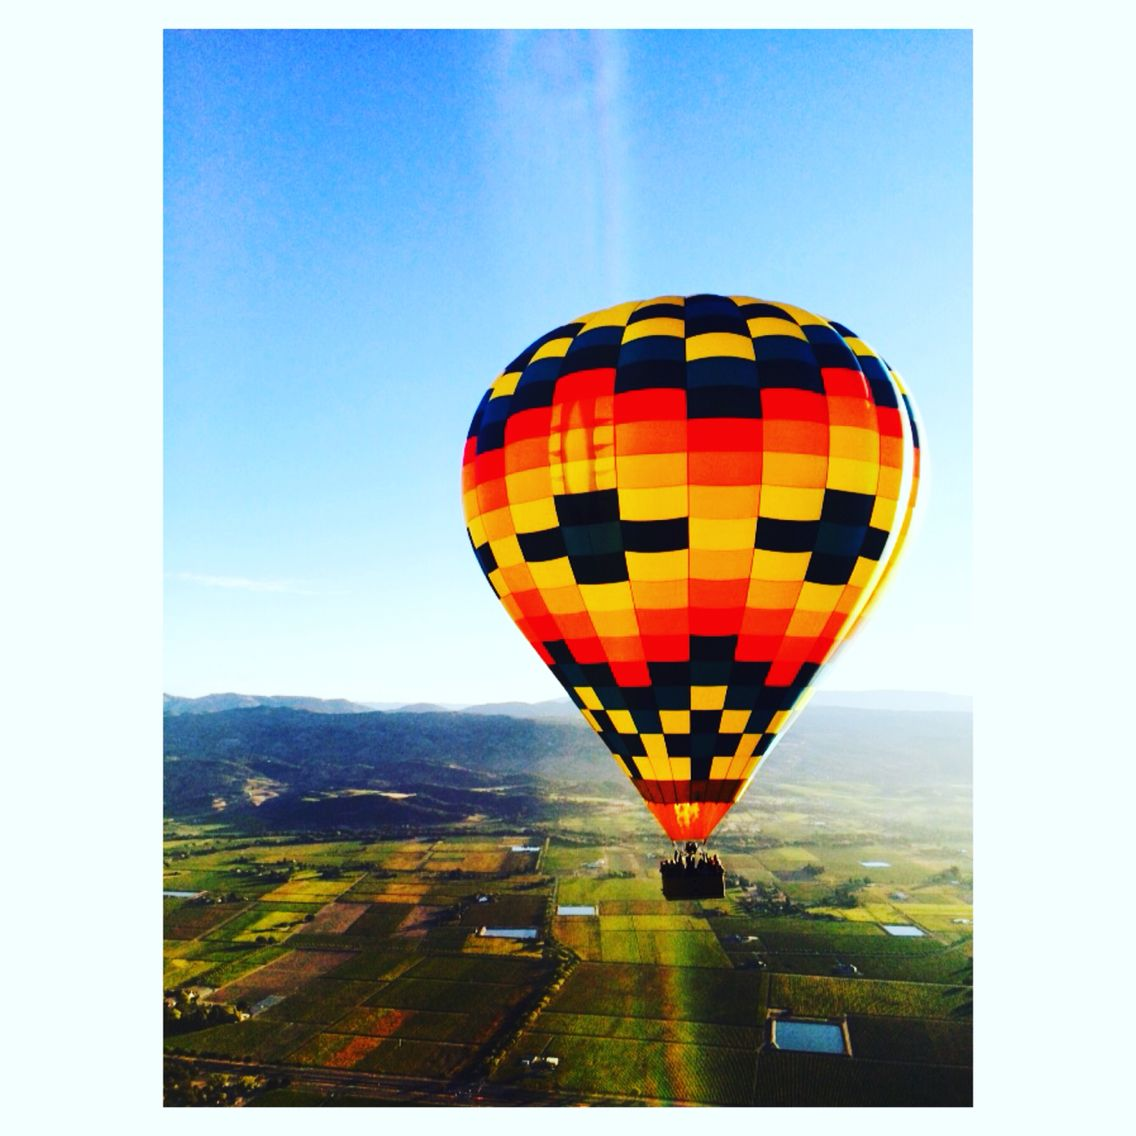 Hot air balloon ride in Napa Valley. Hot air balloon